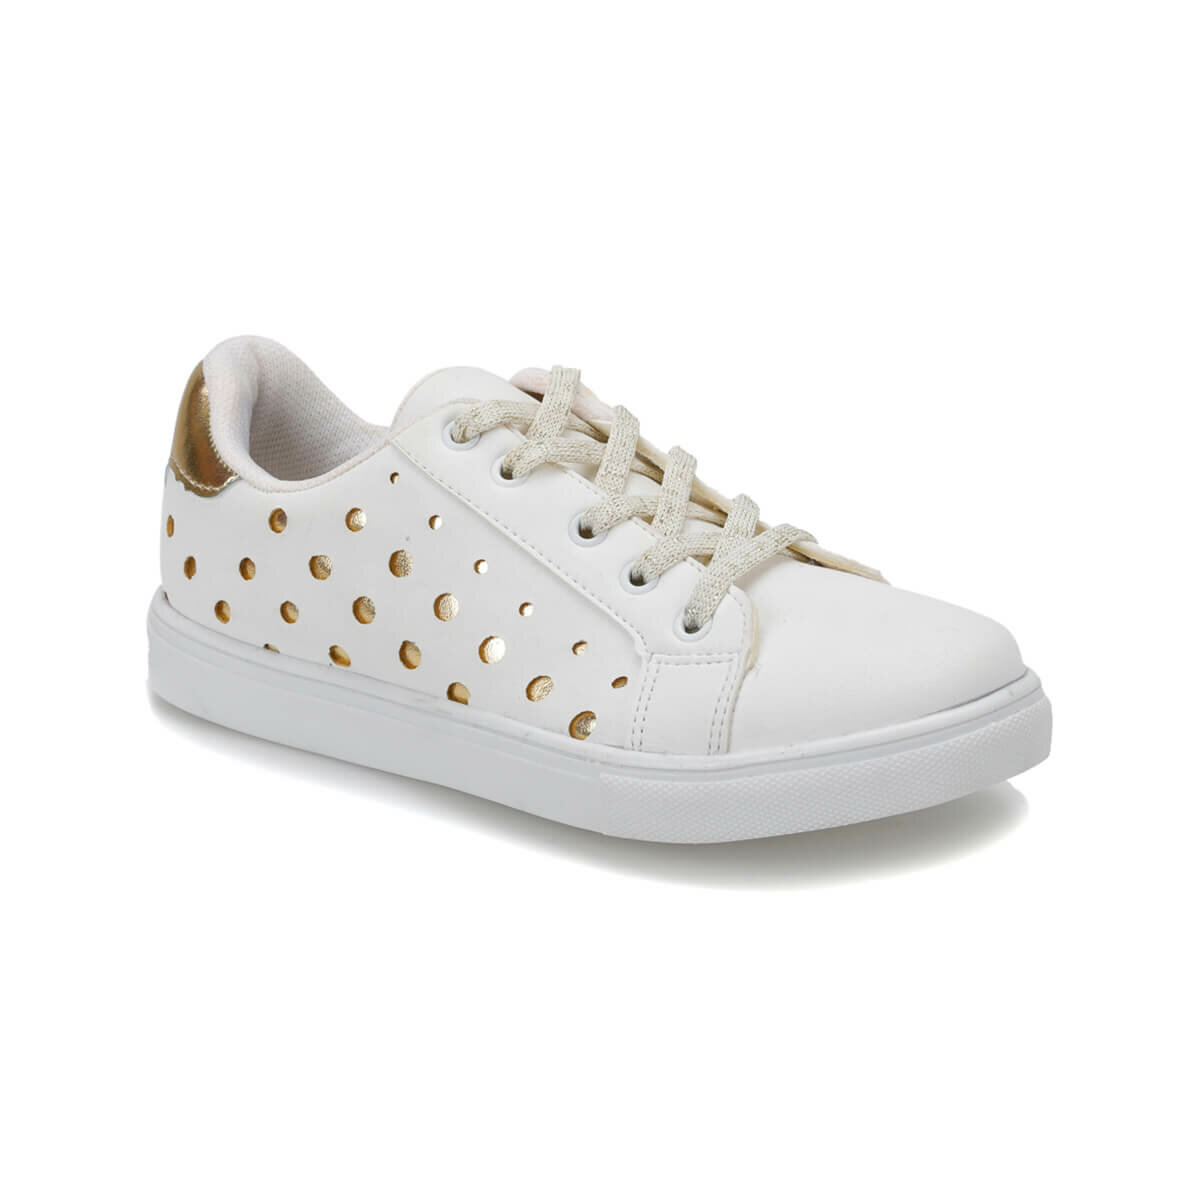 FLO POINT White Female Child Sneaker Shoes I-Cool